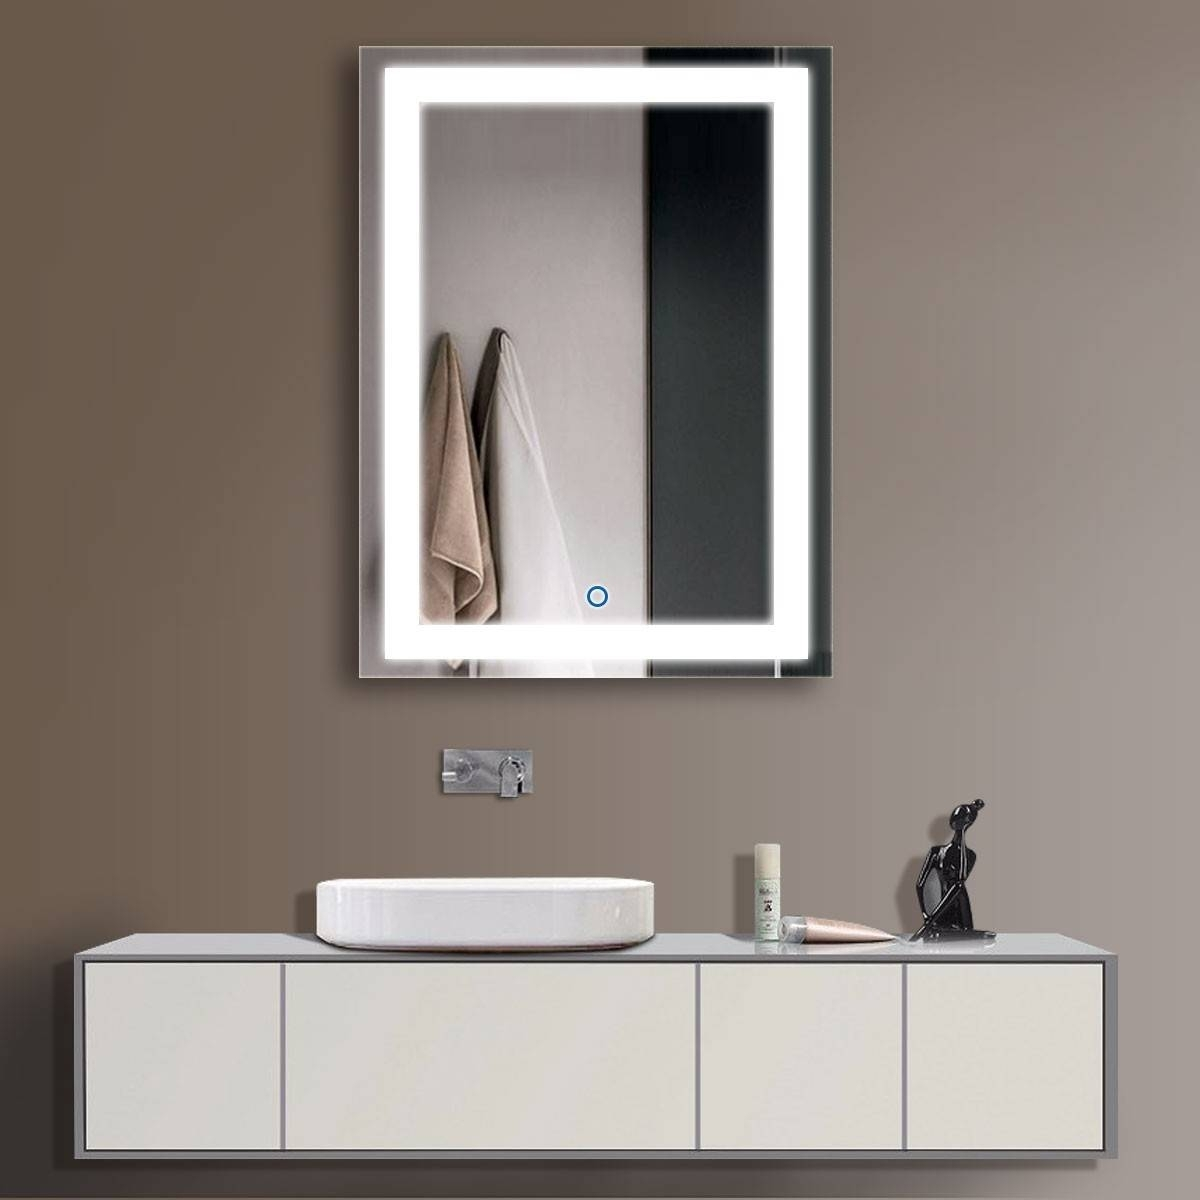 LED Bathroom Wall Mirror Illuminated Lighted Vanity Mirror .